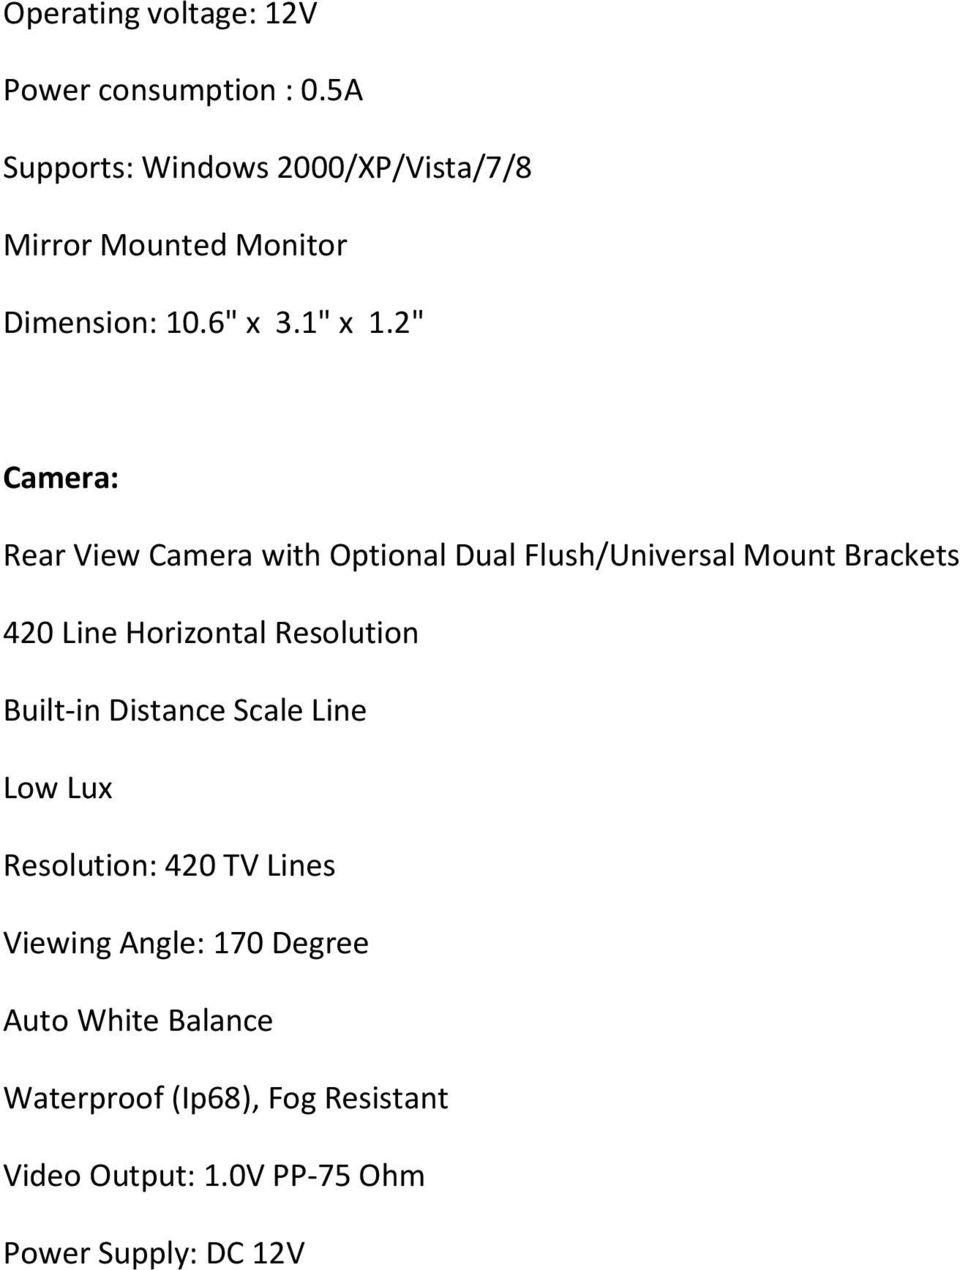 "2"" Camera: Rear View Camera with Optional Dual Flush/Universal Mount Brackets 420 Line Horizontal Resolution"